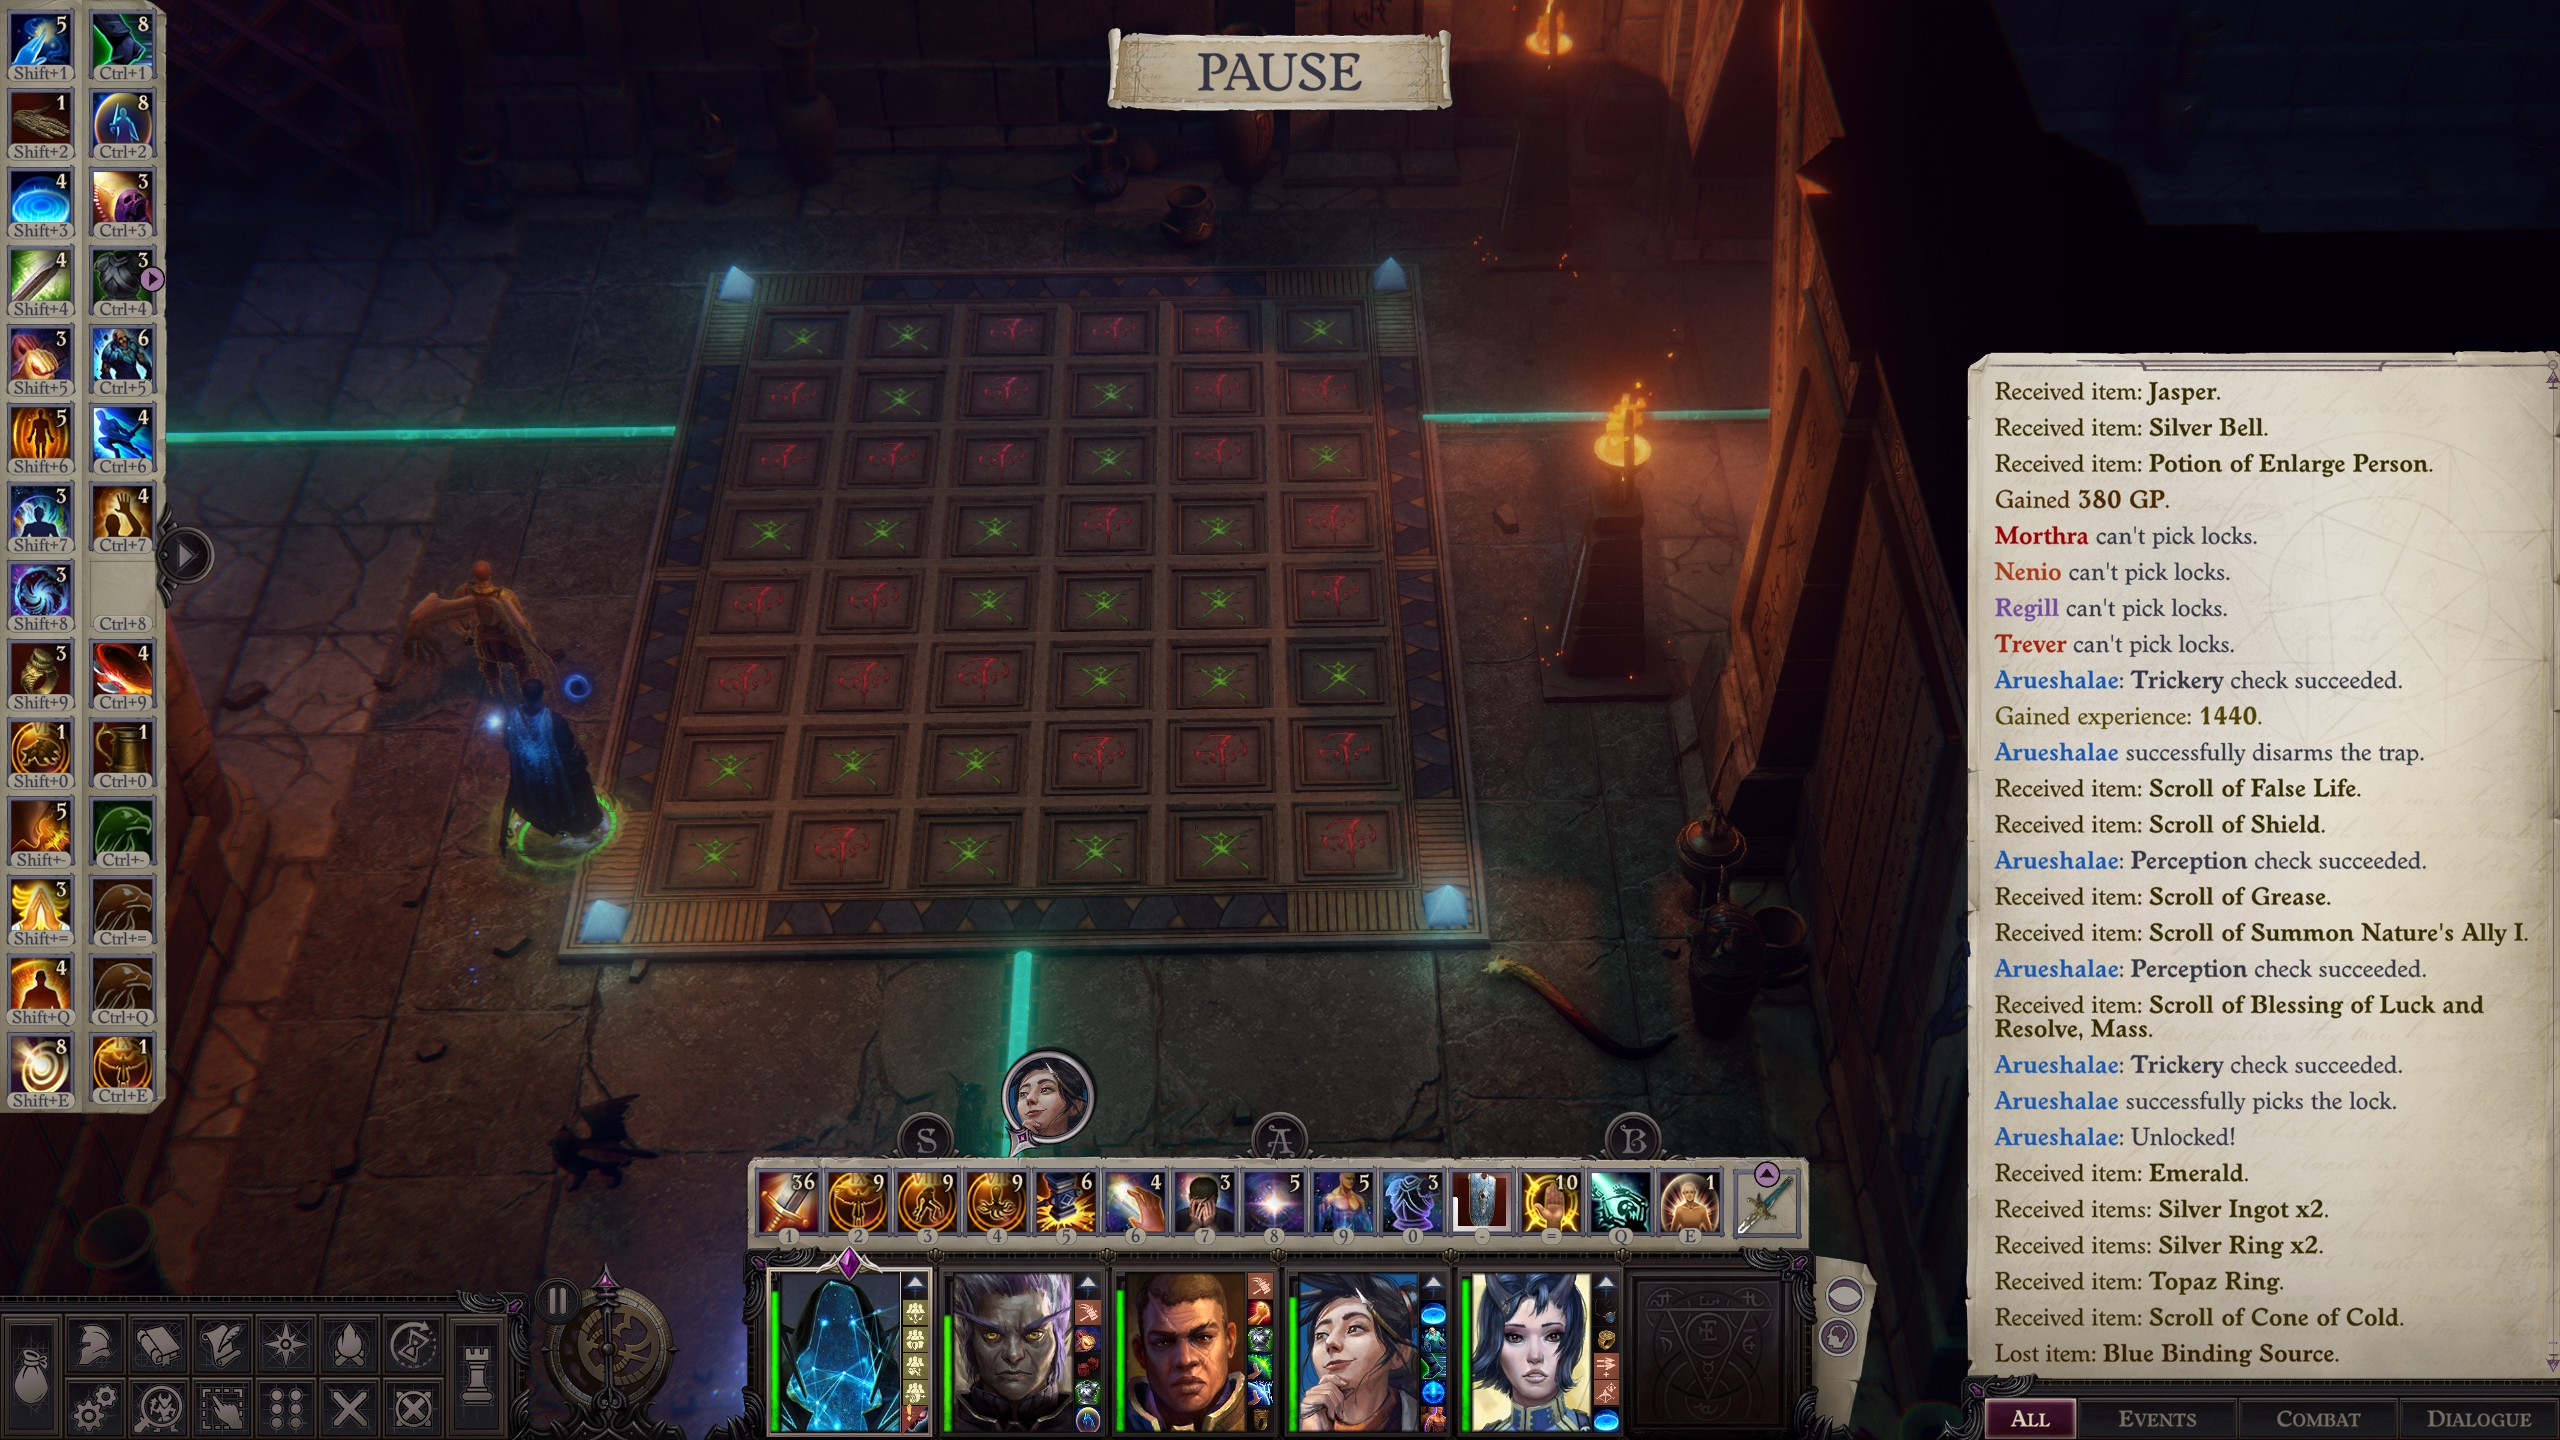 Pathfinder: Wrath of the Righteous - Puzzle Solution Tips for Enigma - Playthrough - Puzzle 1: Tic Tac Toe - BE340CA